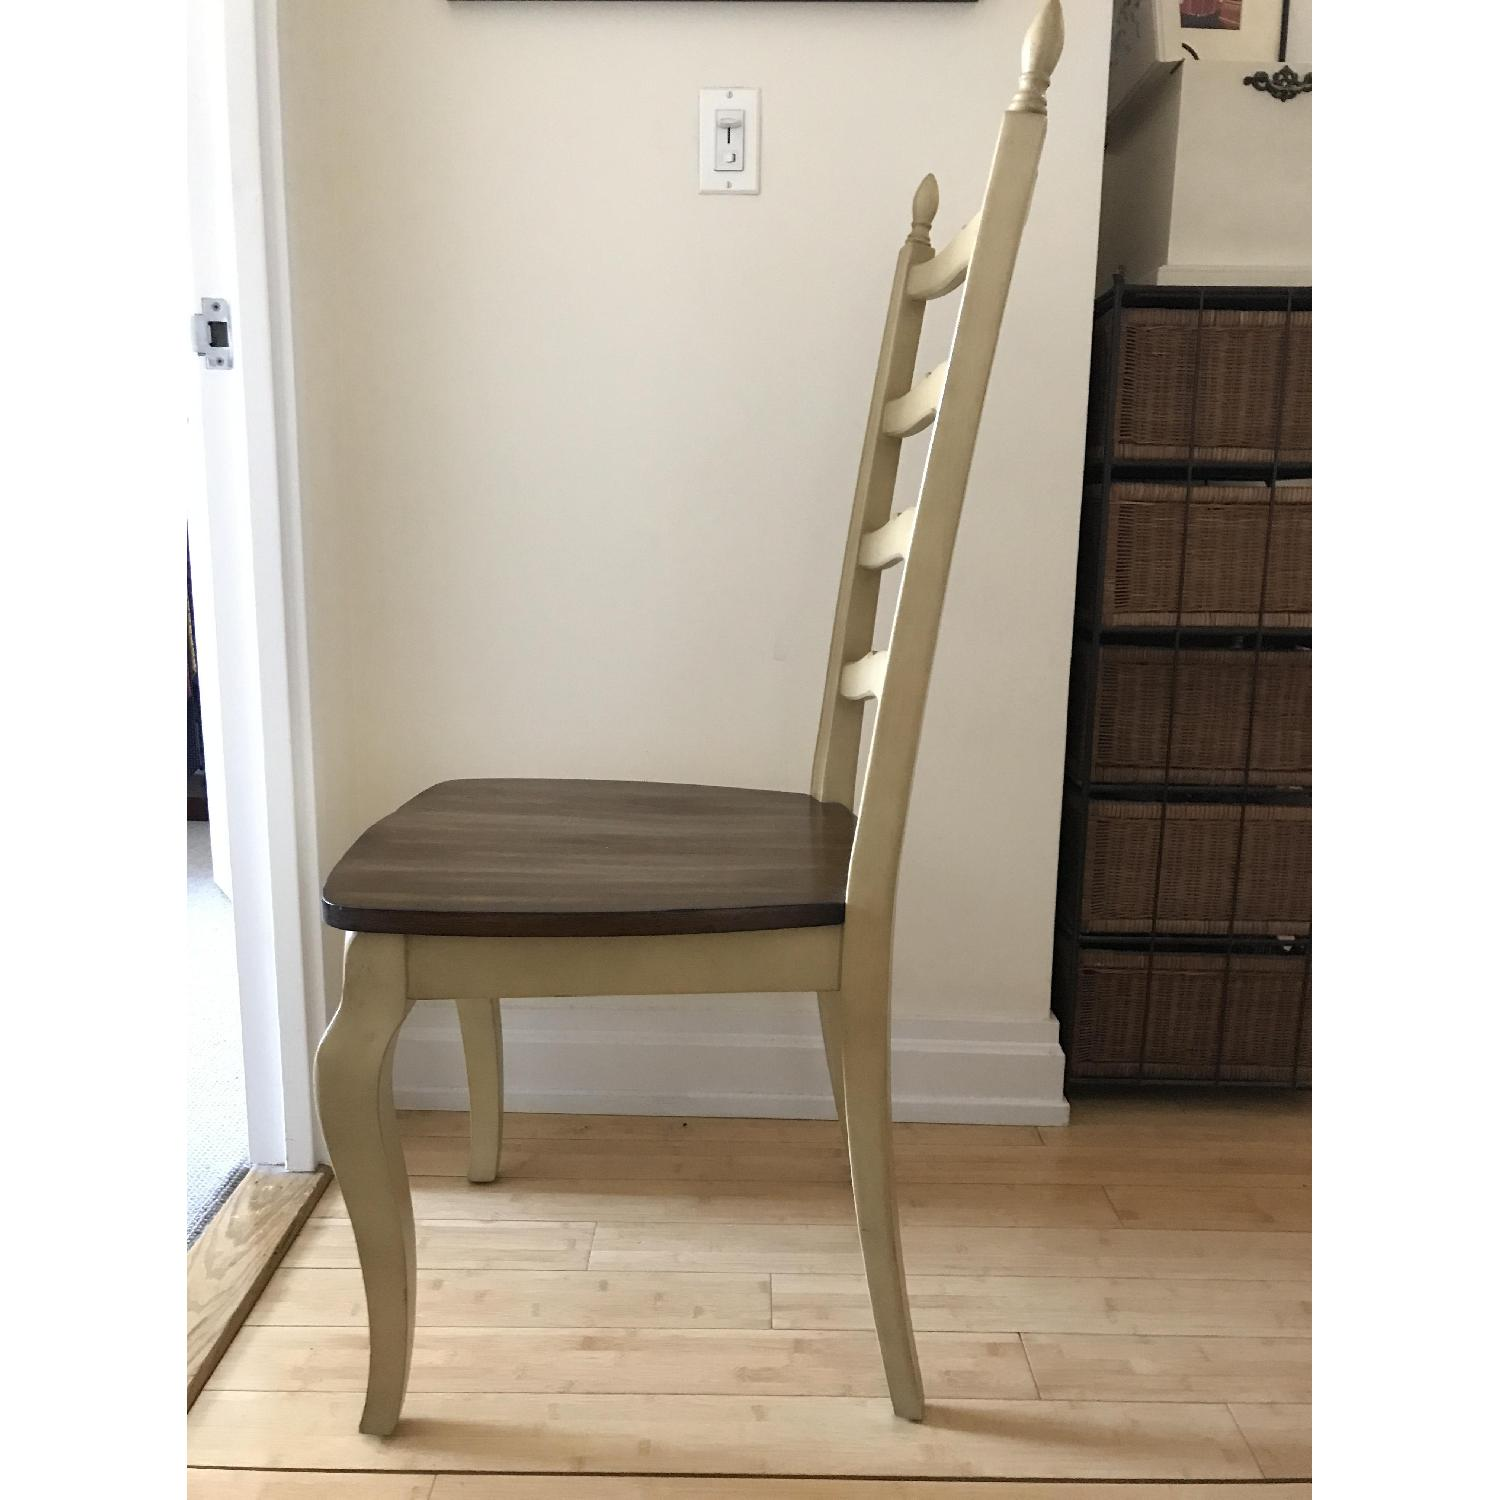 Pier 1 Francesca Antique Ivory Dining Chair-3